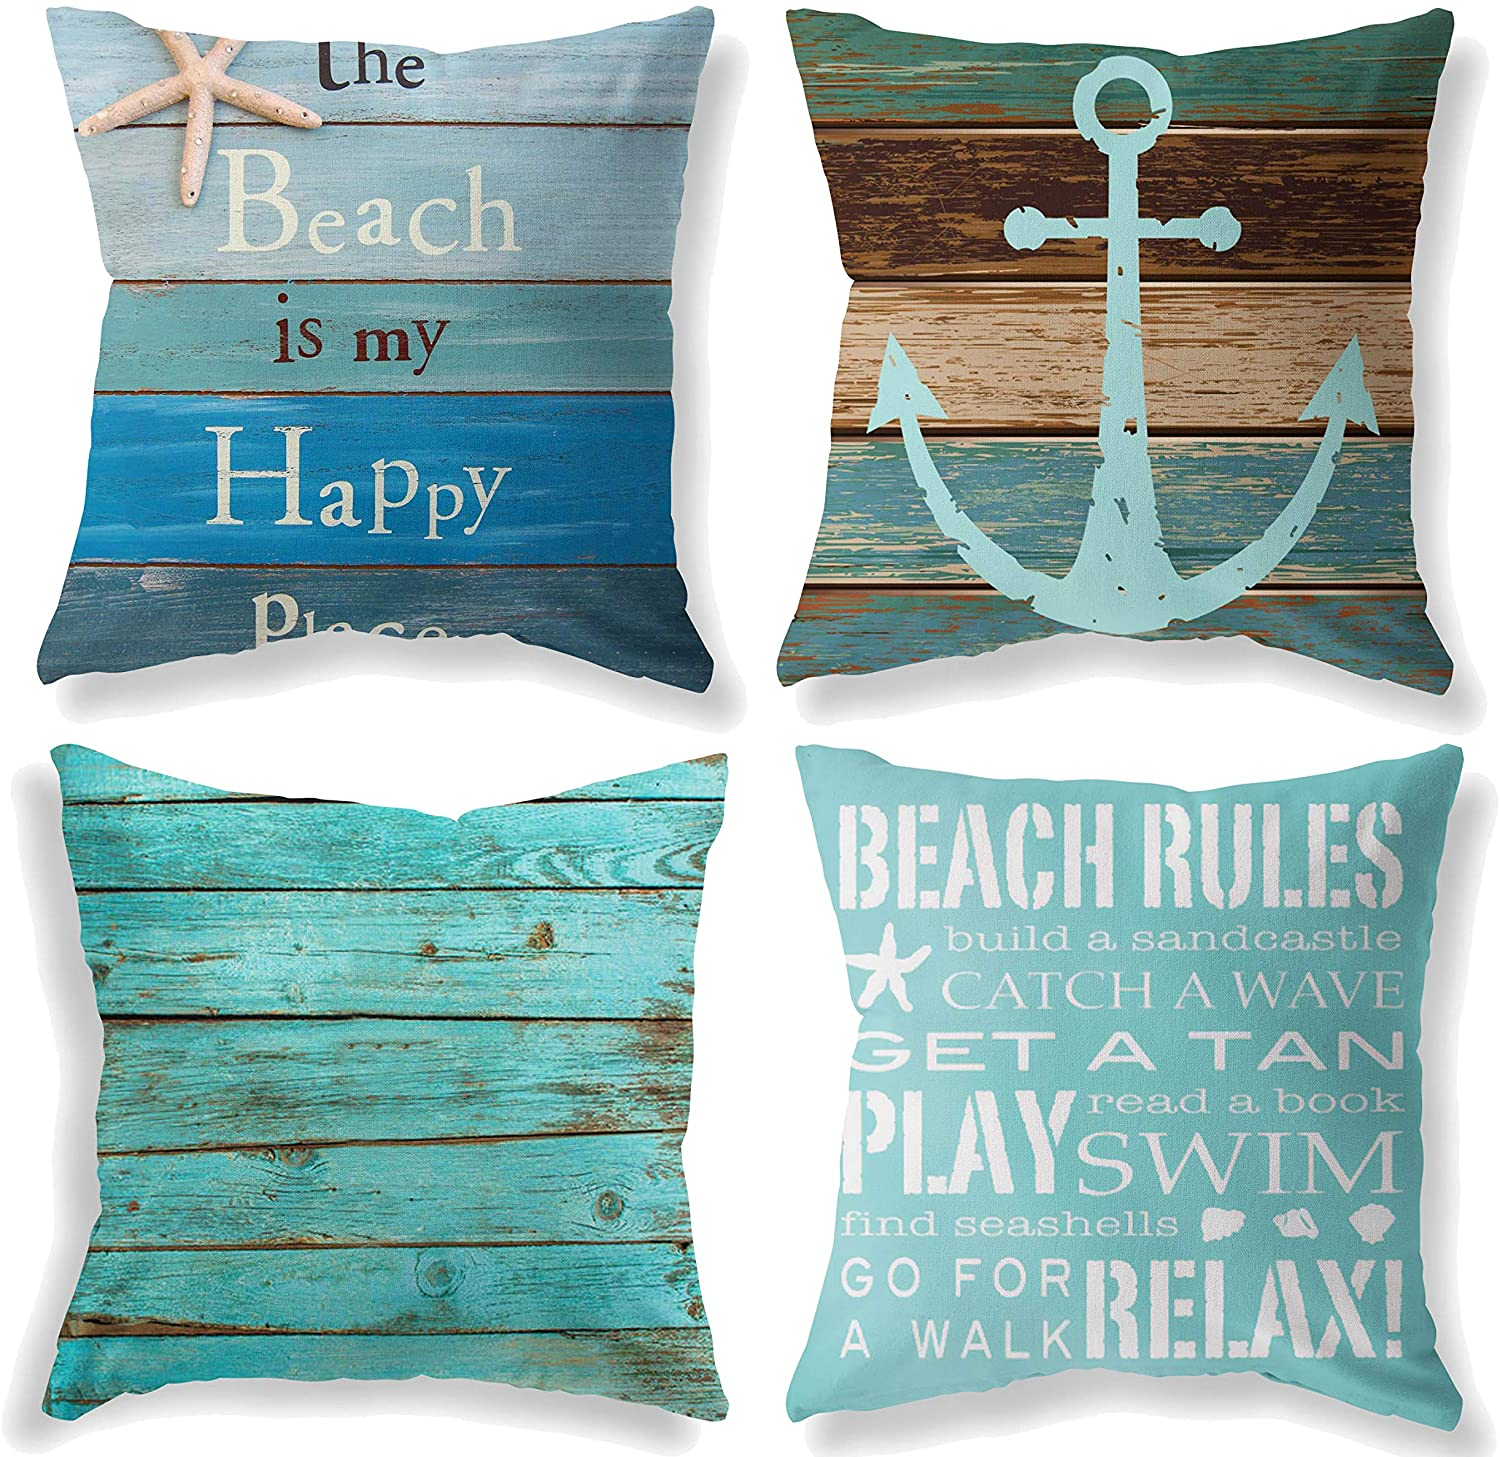 LuckyCow Throw Pillow Covers 18x18 Inch - Cotton Linen Blue Theme Ocean Starfish Wood Grain Beach Game Pillow Covers, Decorative Pillowcase for Home Sofa Bedding Couch Outdoor Cushion Covers.